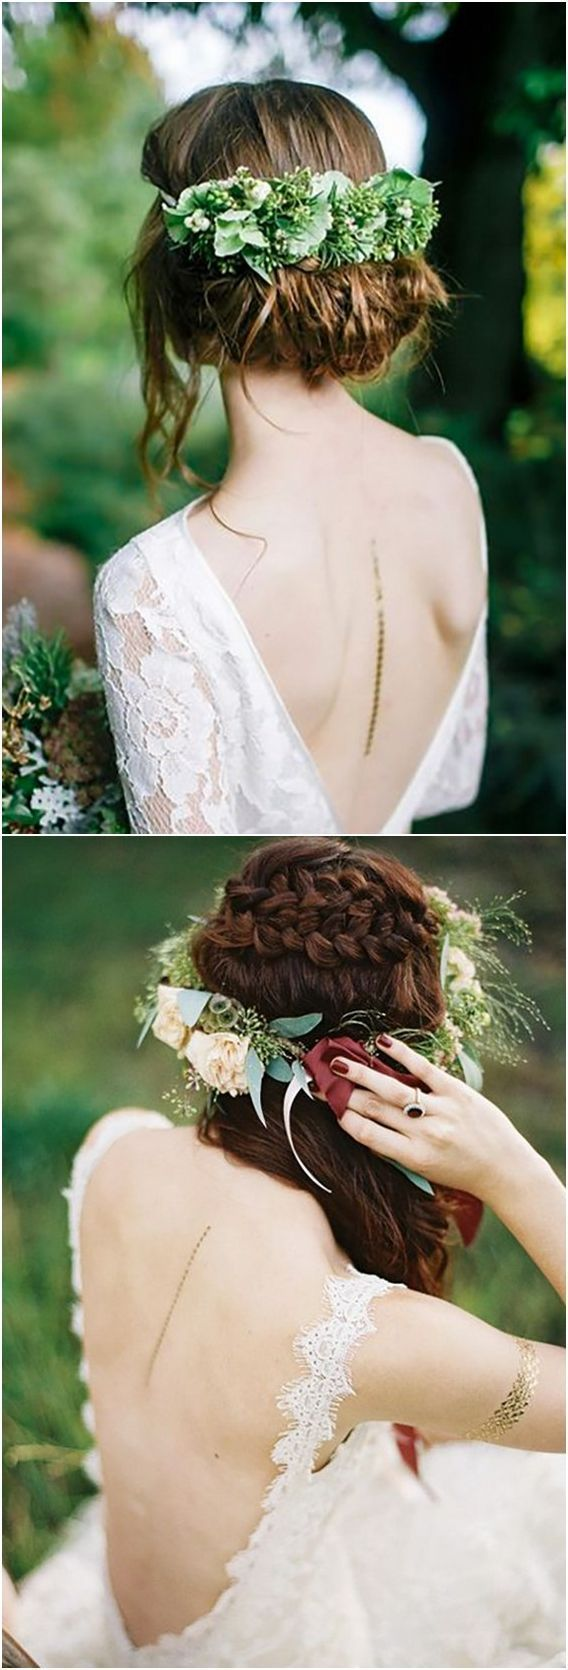 Pin by wedding planner on wedding crowns pinterest weddingideas today incorporating a flower crown to an updo or loose locks is an easy way for brides to add subtle color texture and natural beauty to a wedding day izmirmasajfo